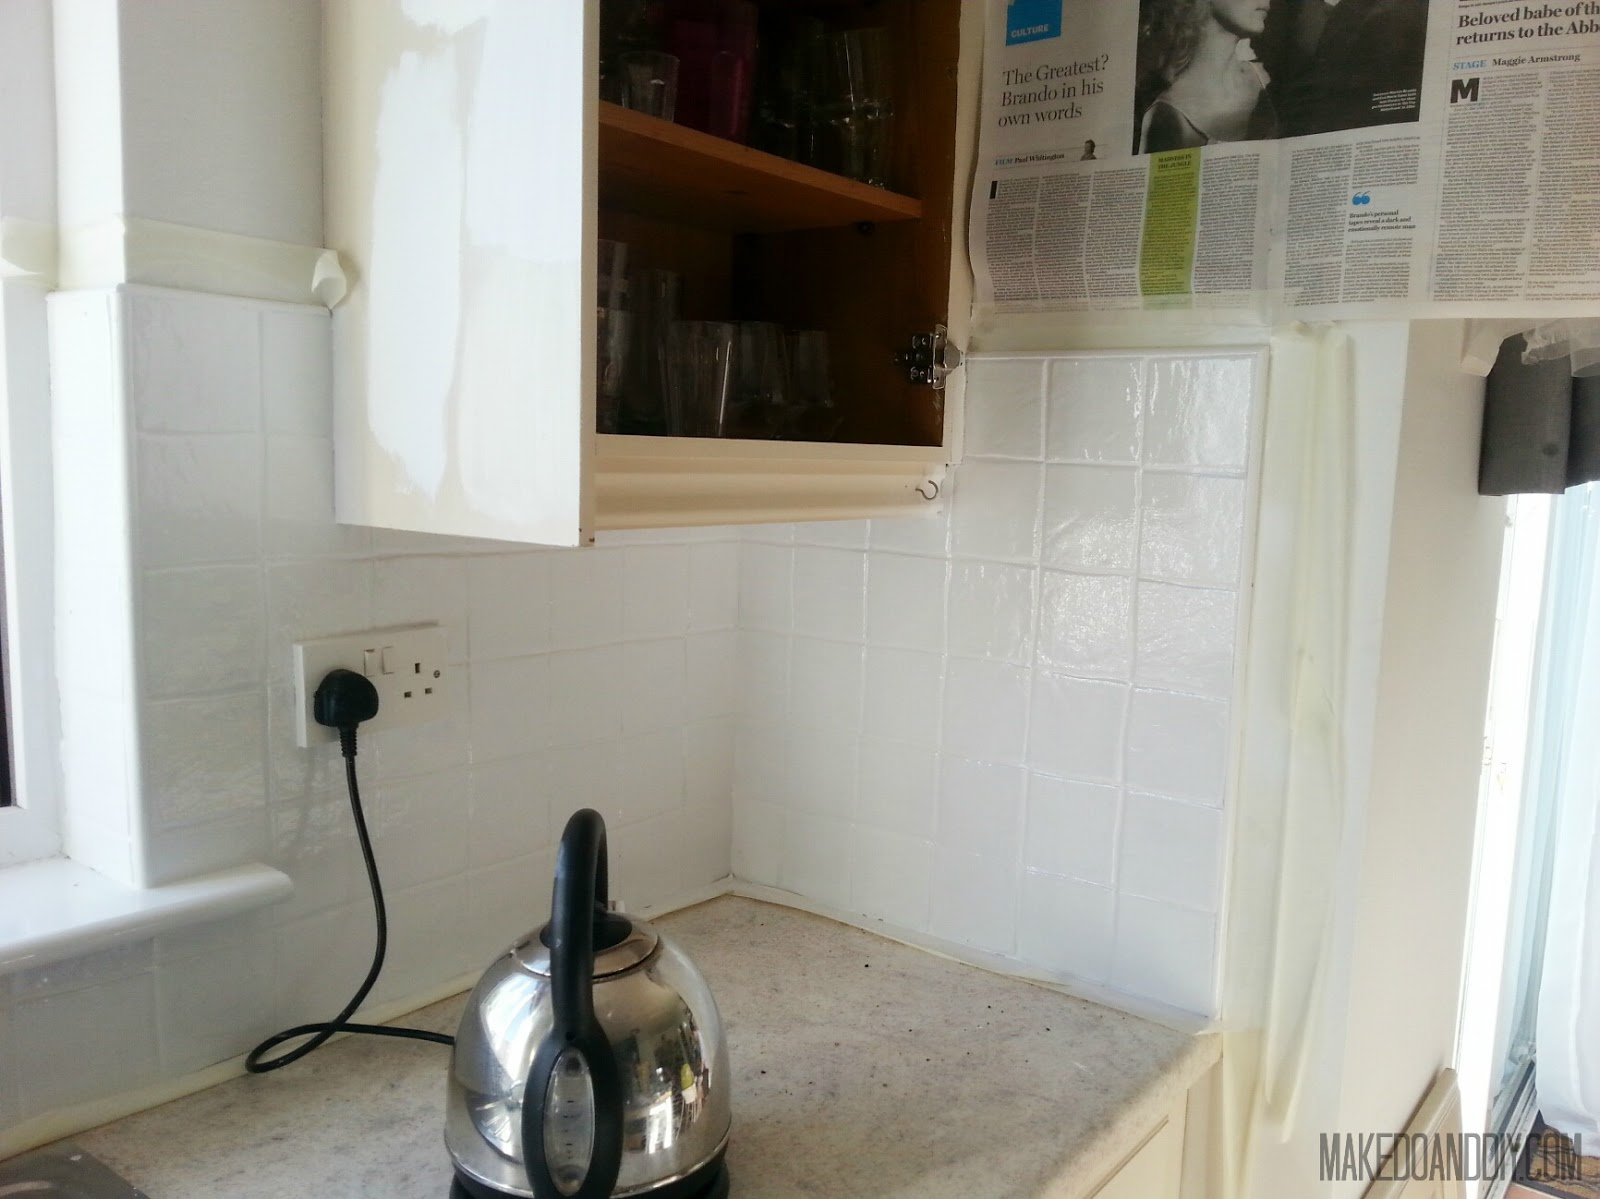 Painted Tile Backsplash Cover Those Ugly Tiles! Make Do And DIY